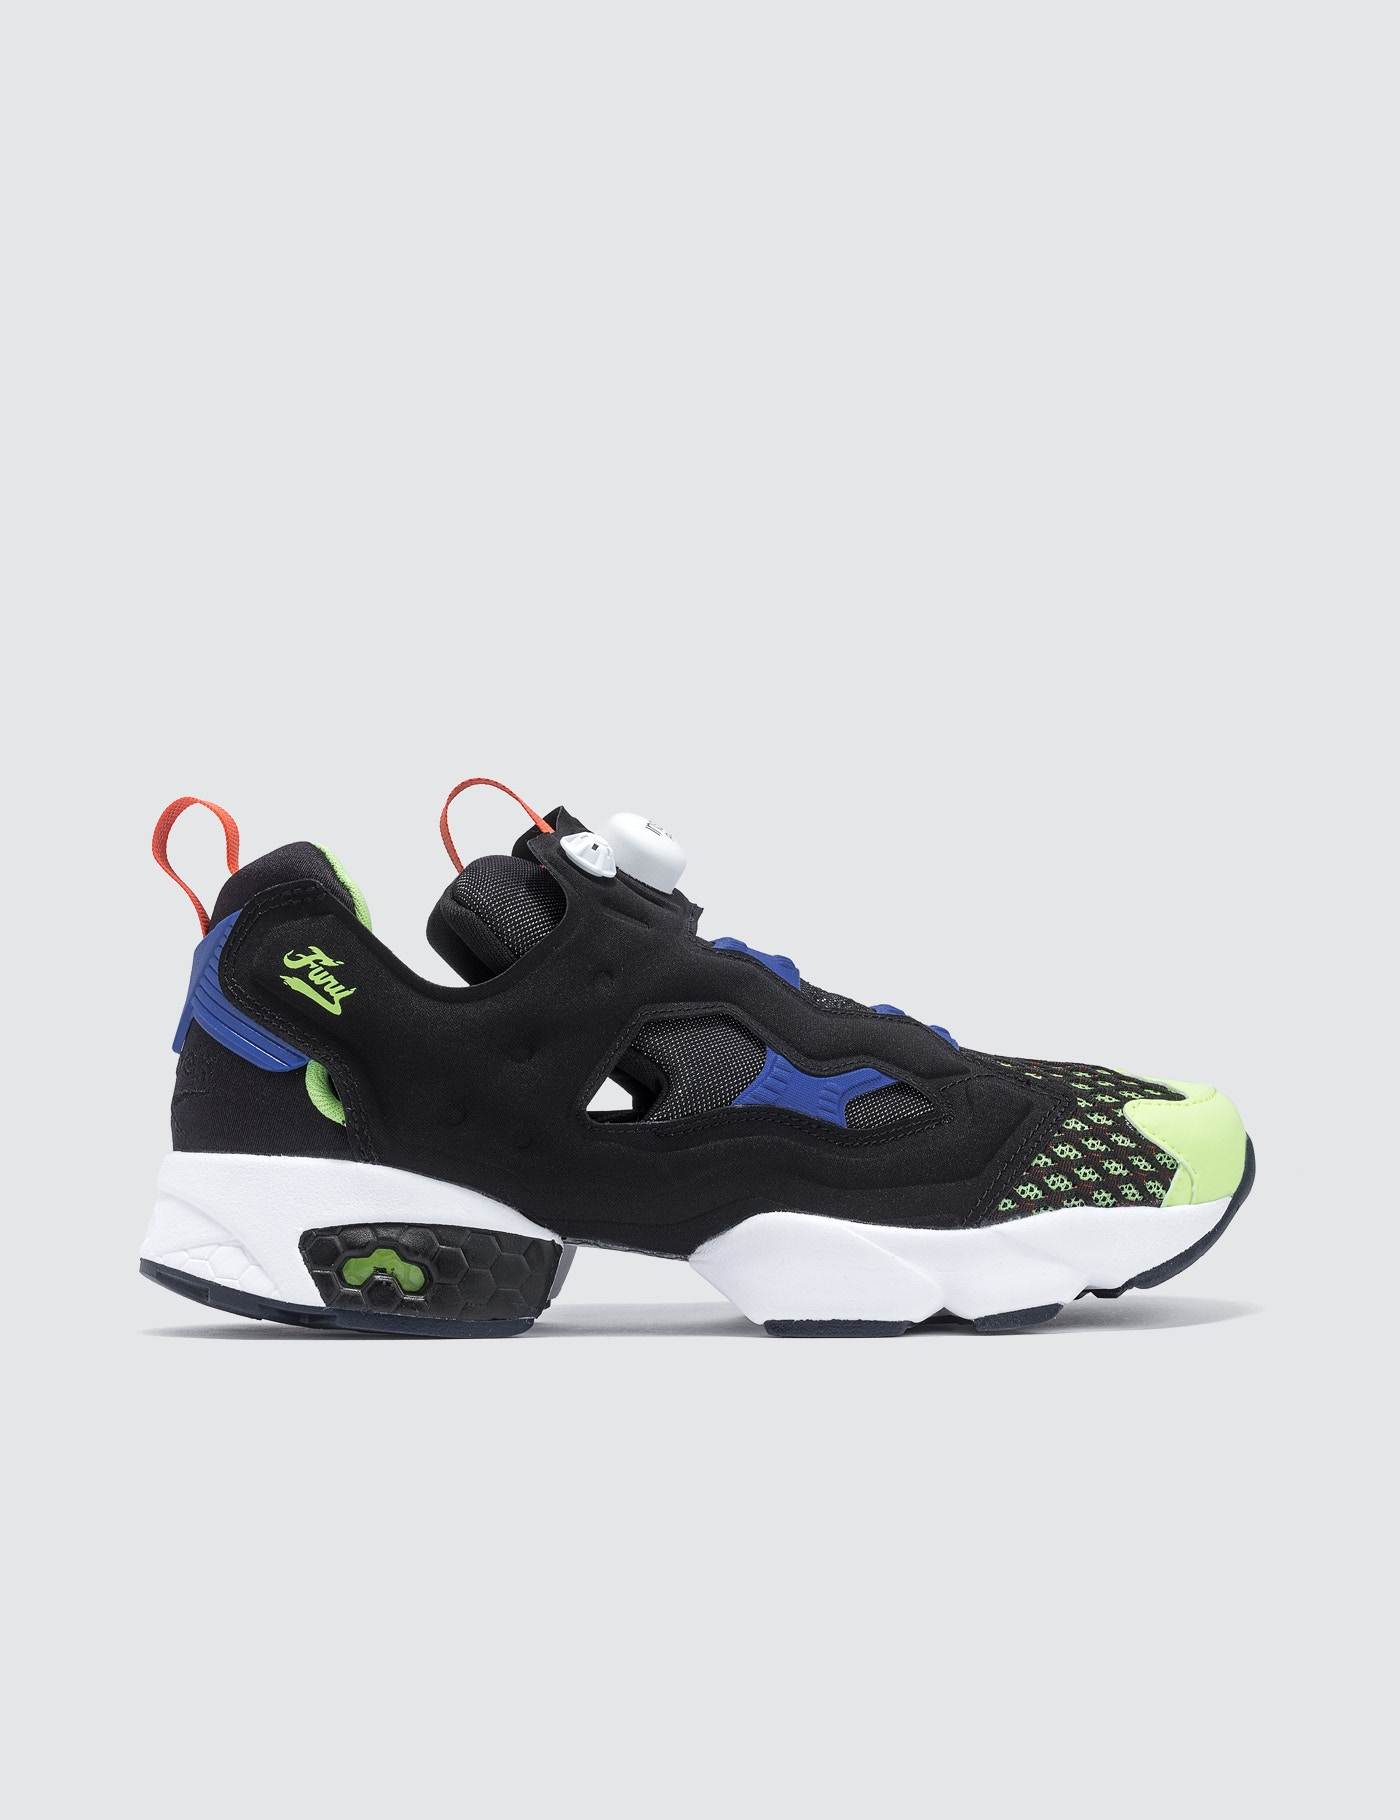 5901a08a5e07db Buy Original Reebok Instapump Fury OG SR at Indonesia